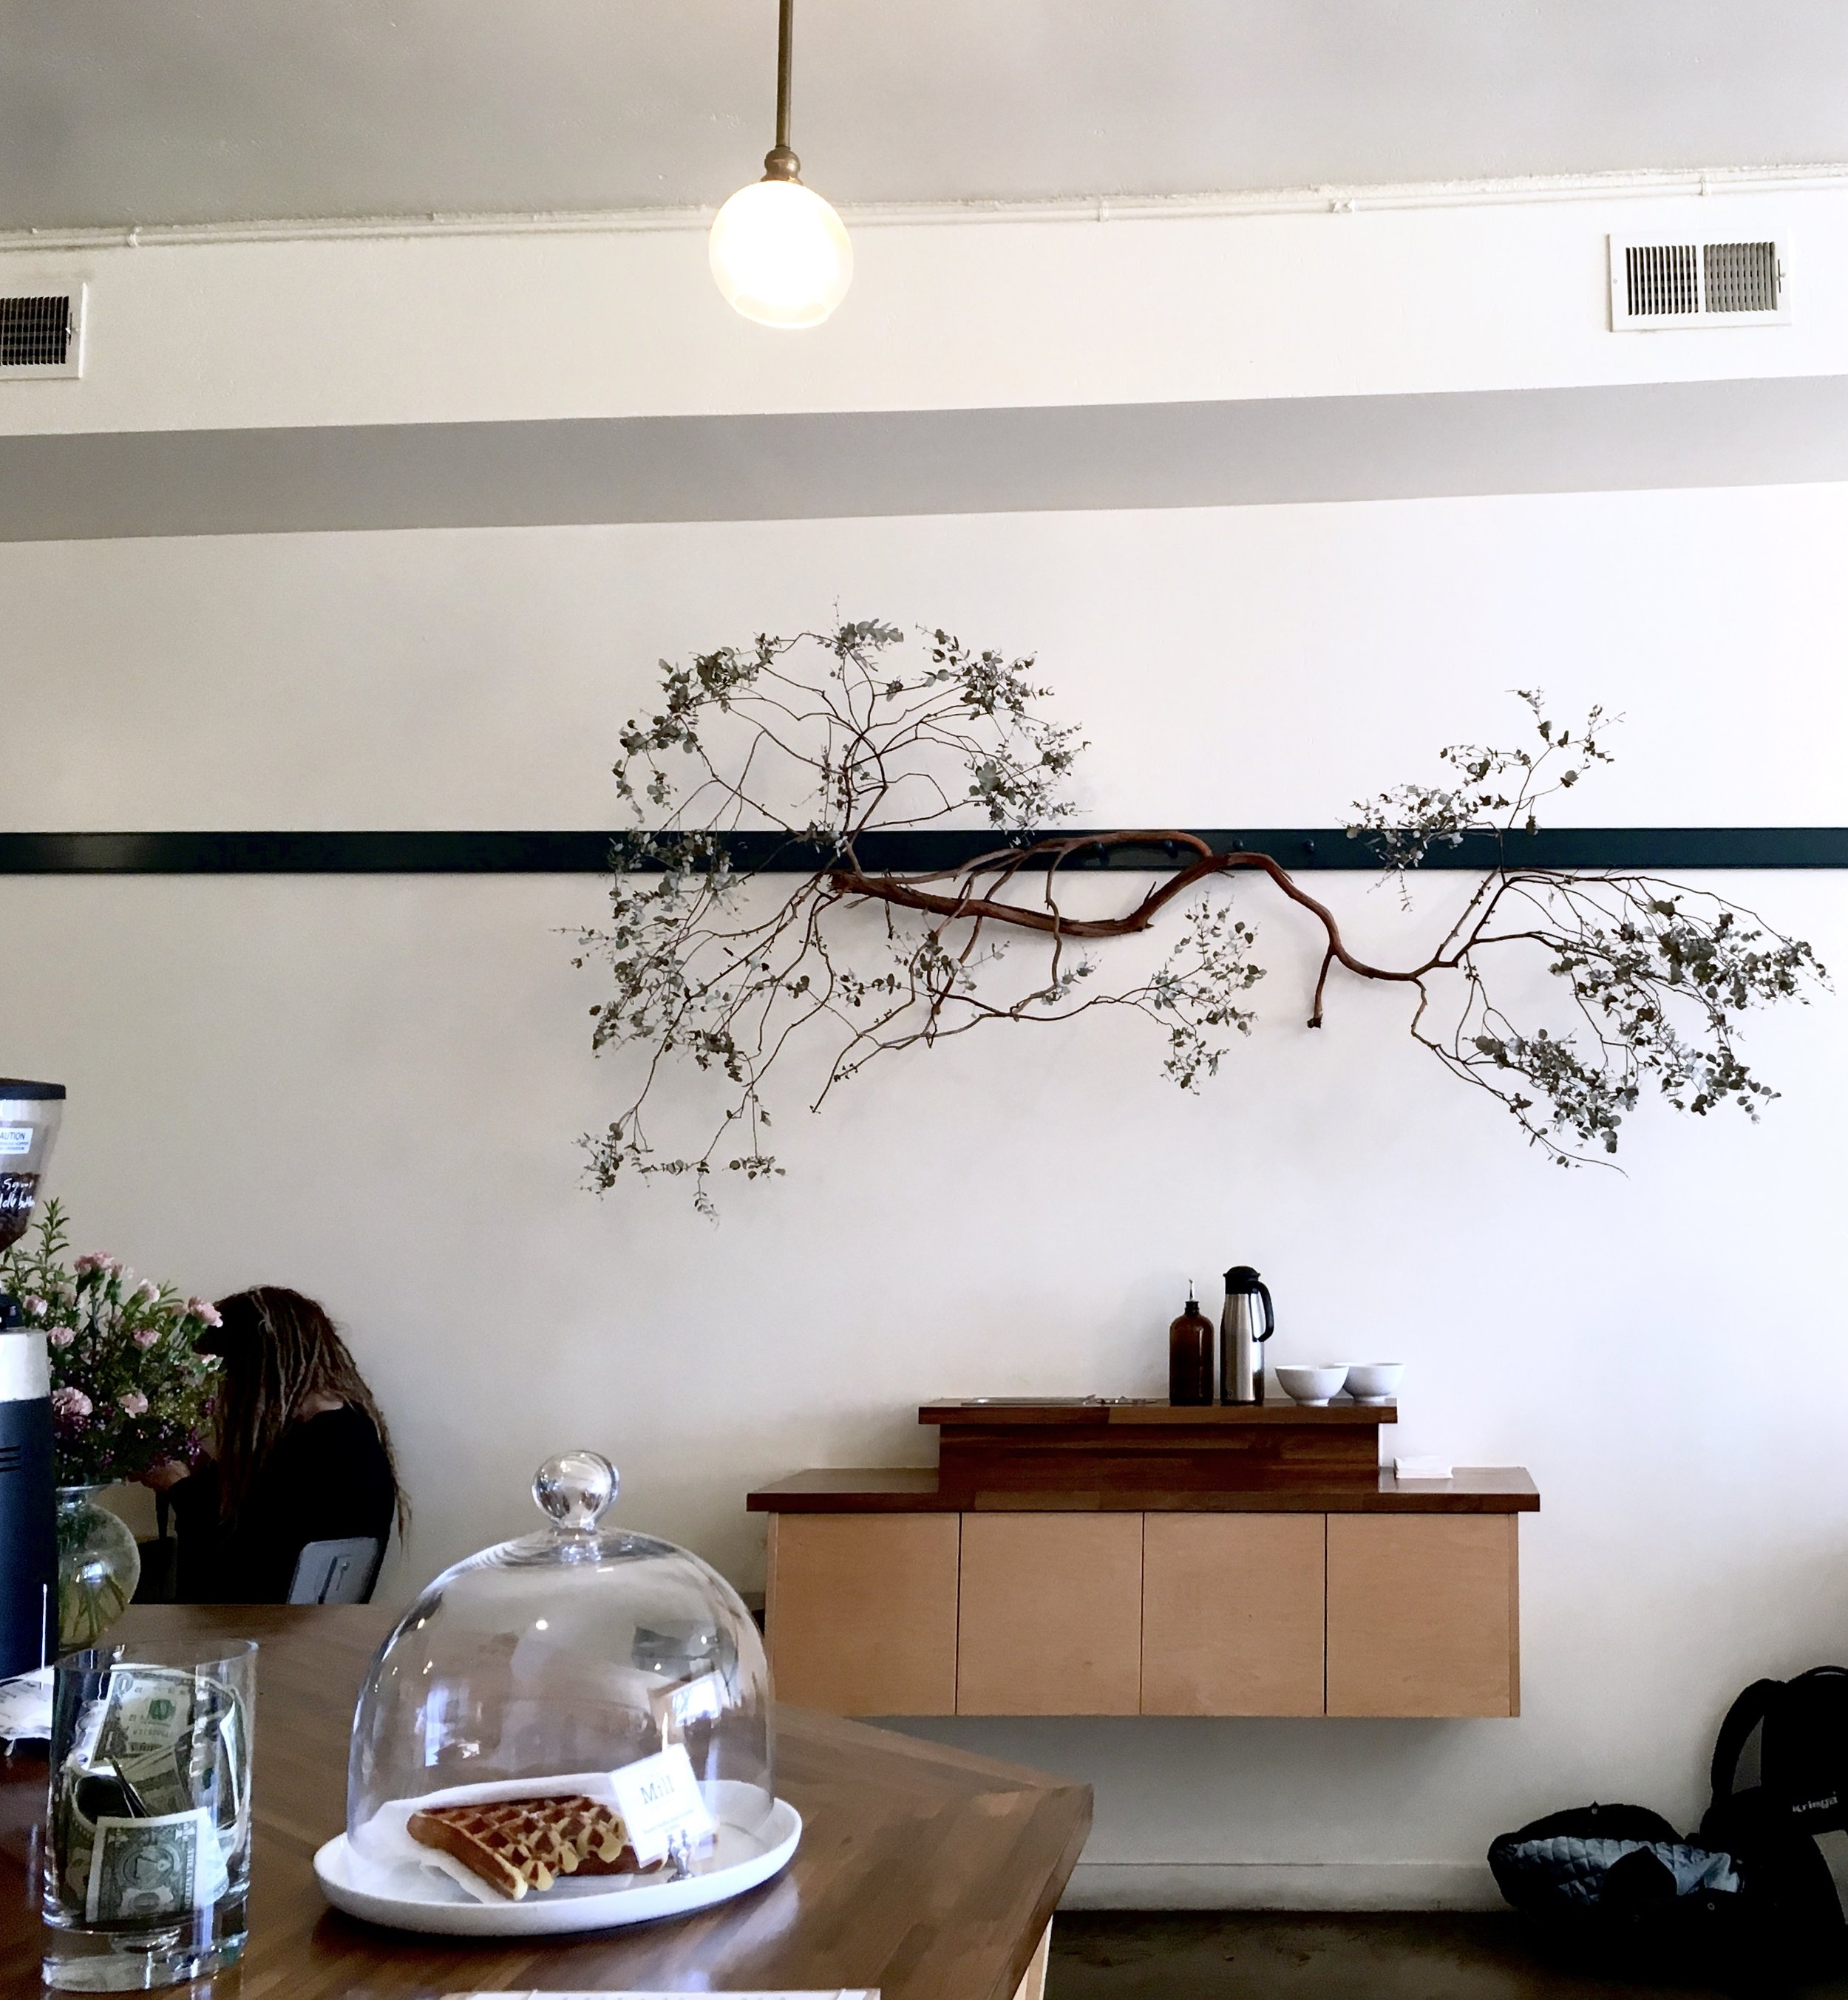 Interior Wall Art at The Mill Coffee Shop